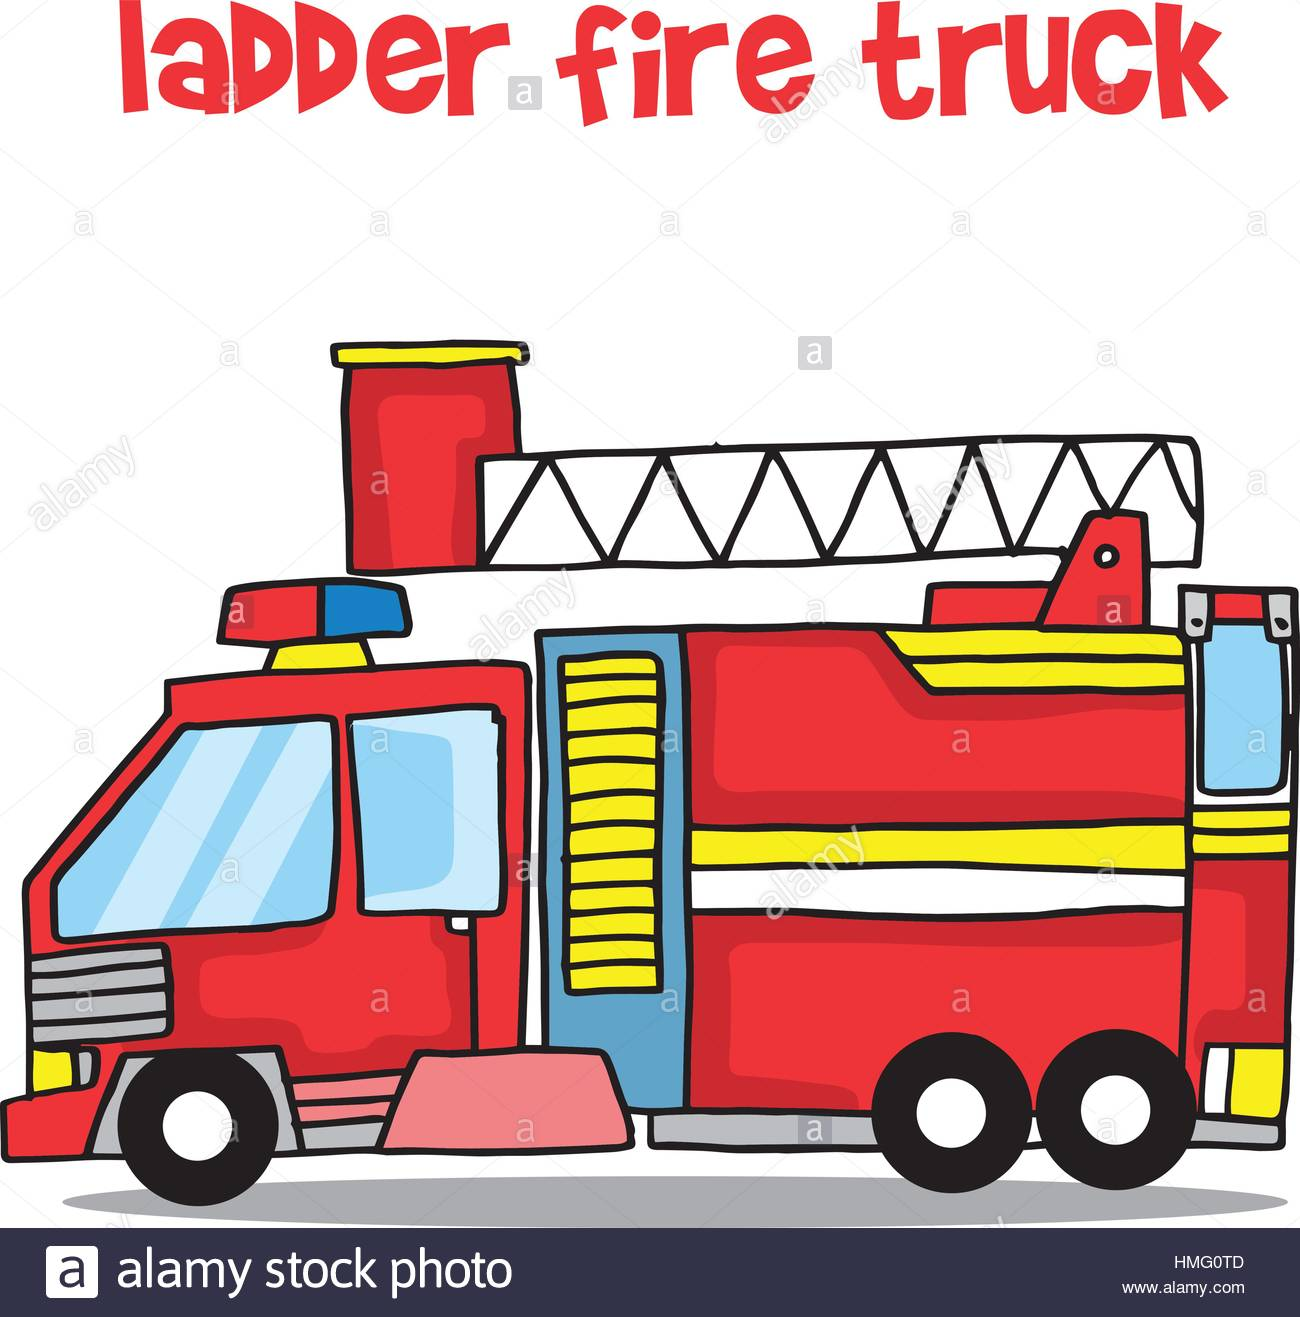 1300x1317 Transport Of Ladder Fire Truck Cartoon Stock Vector Art